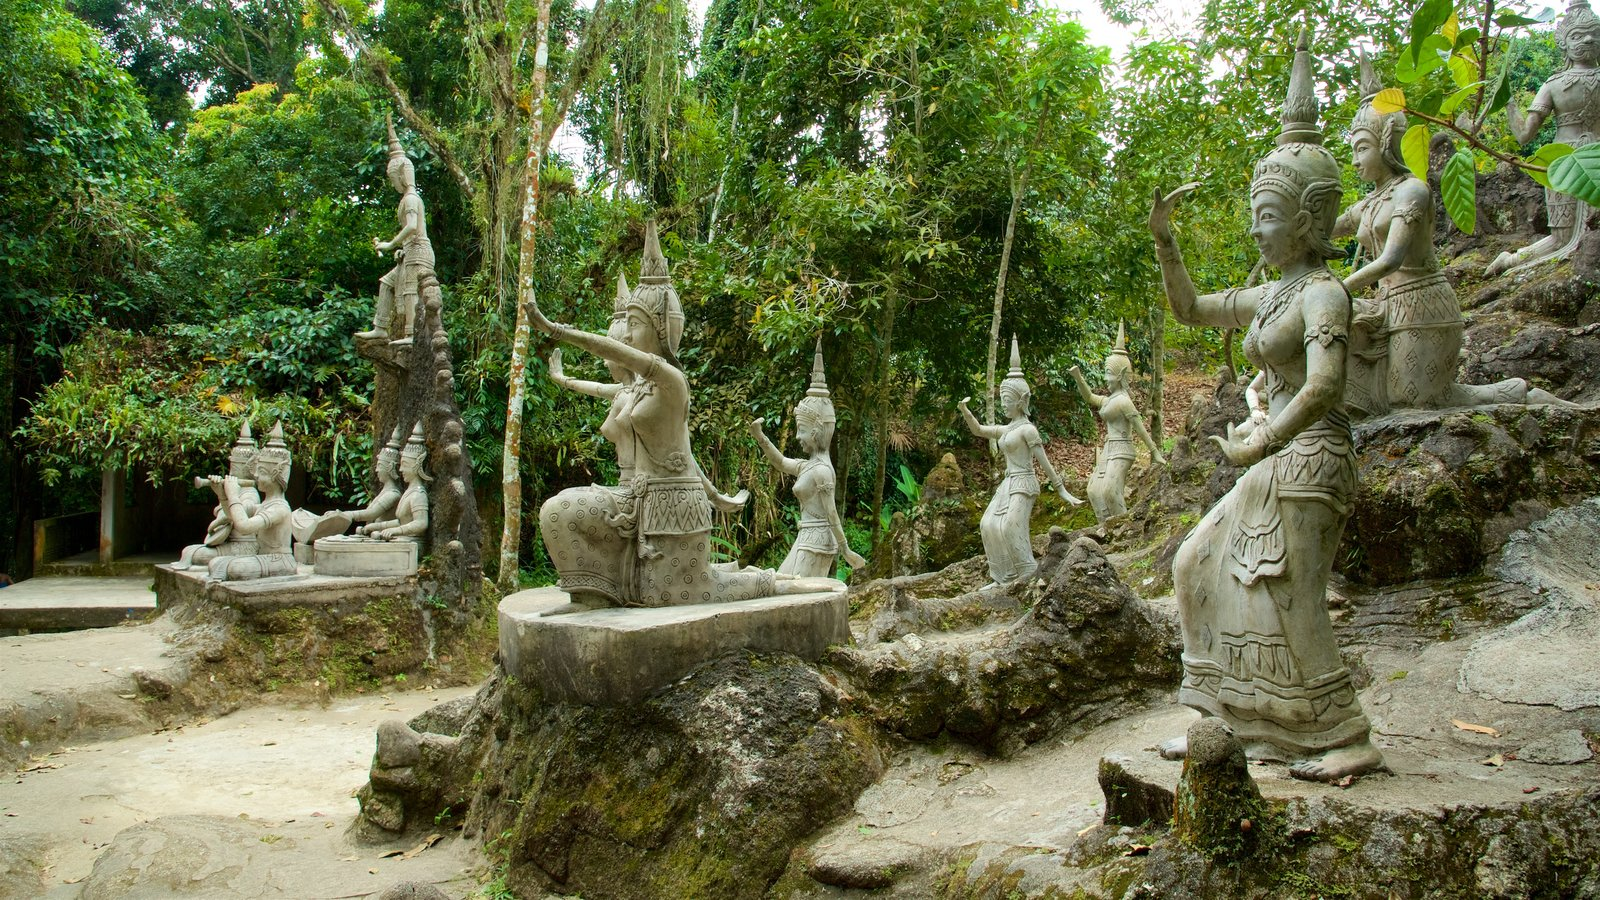 Secret Buddha Garden Which Includes A Park And A Statue Or Sculpture